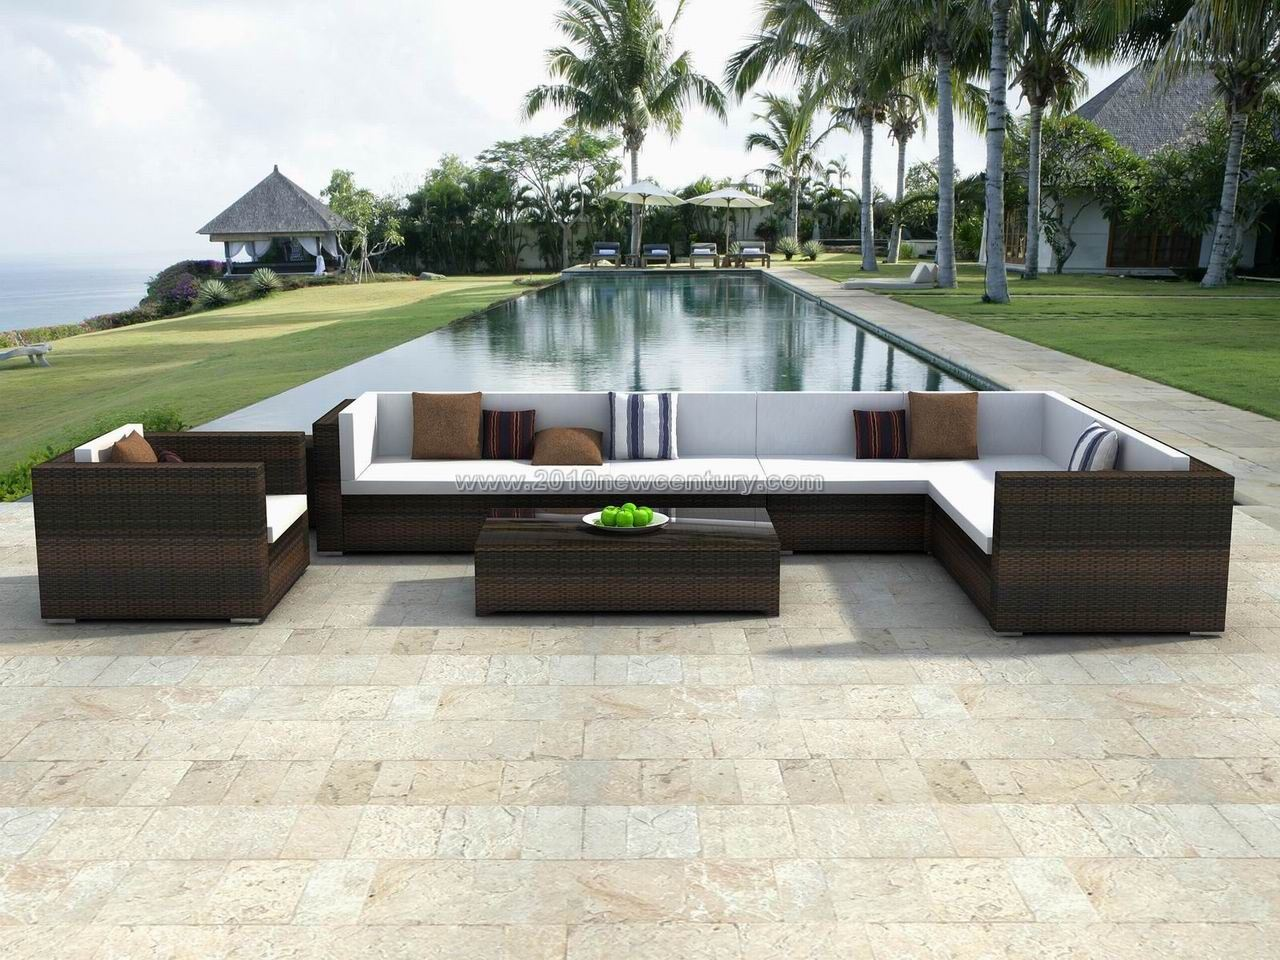 China wicker furniture outdoor furniture rattan for Exterior furniture